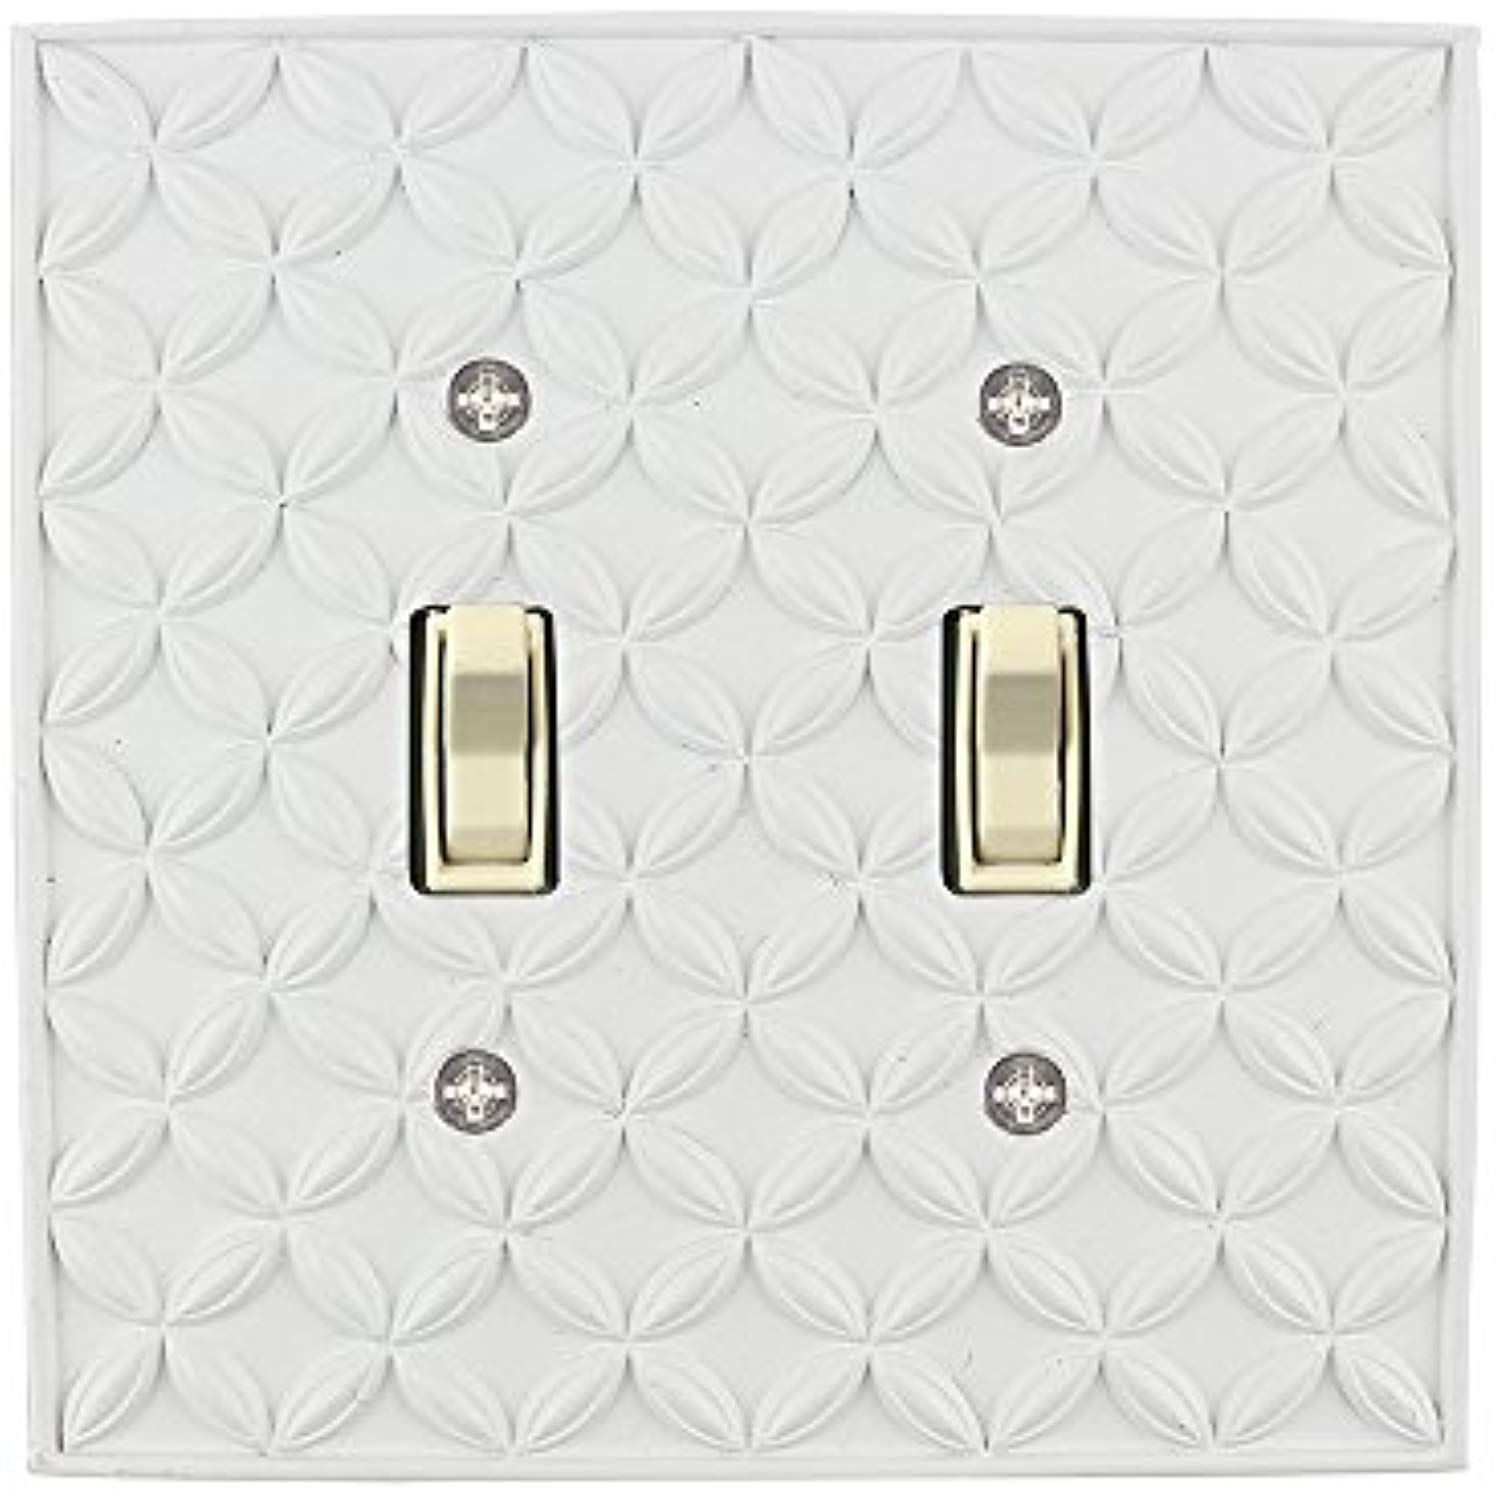 Meriville Colfax 2 Toggle Wallplate Double Switch